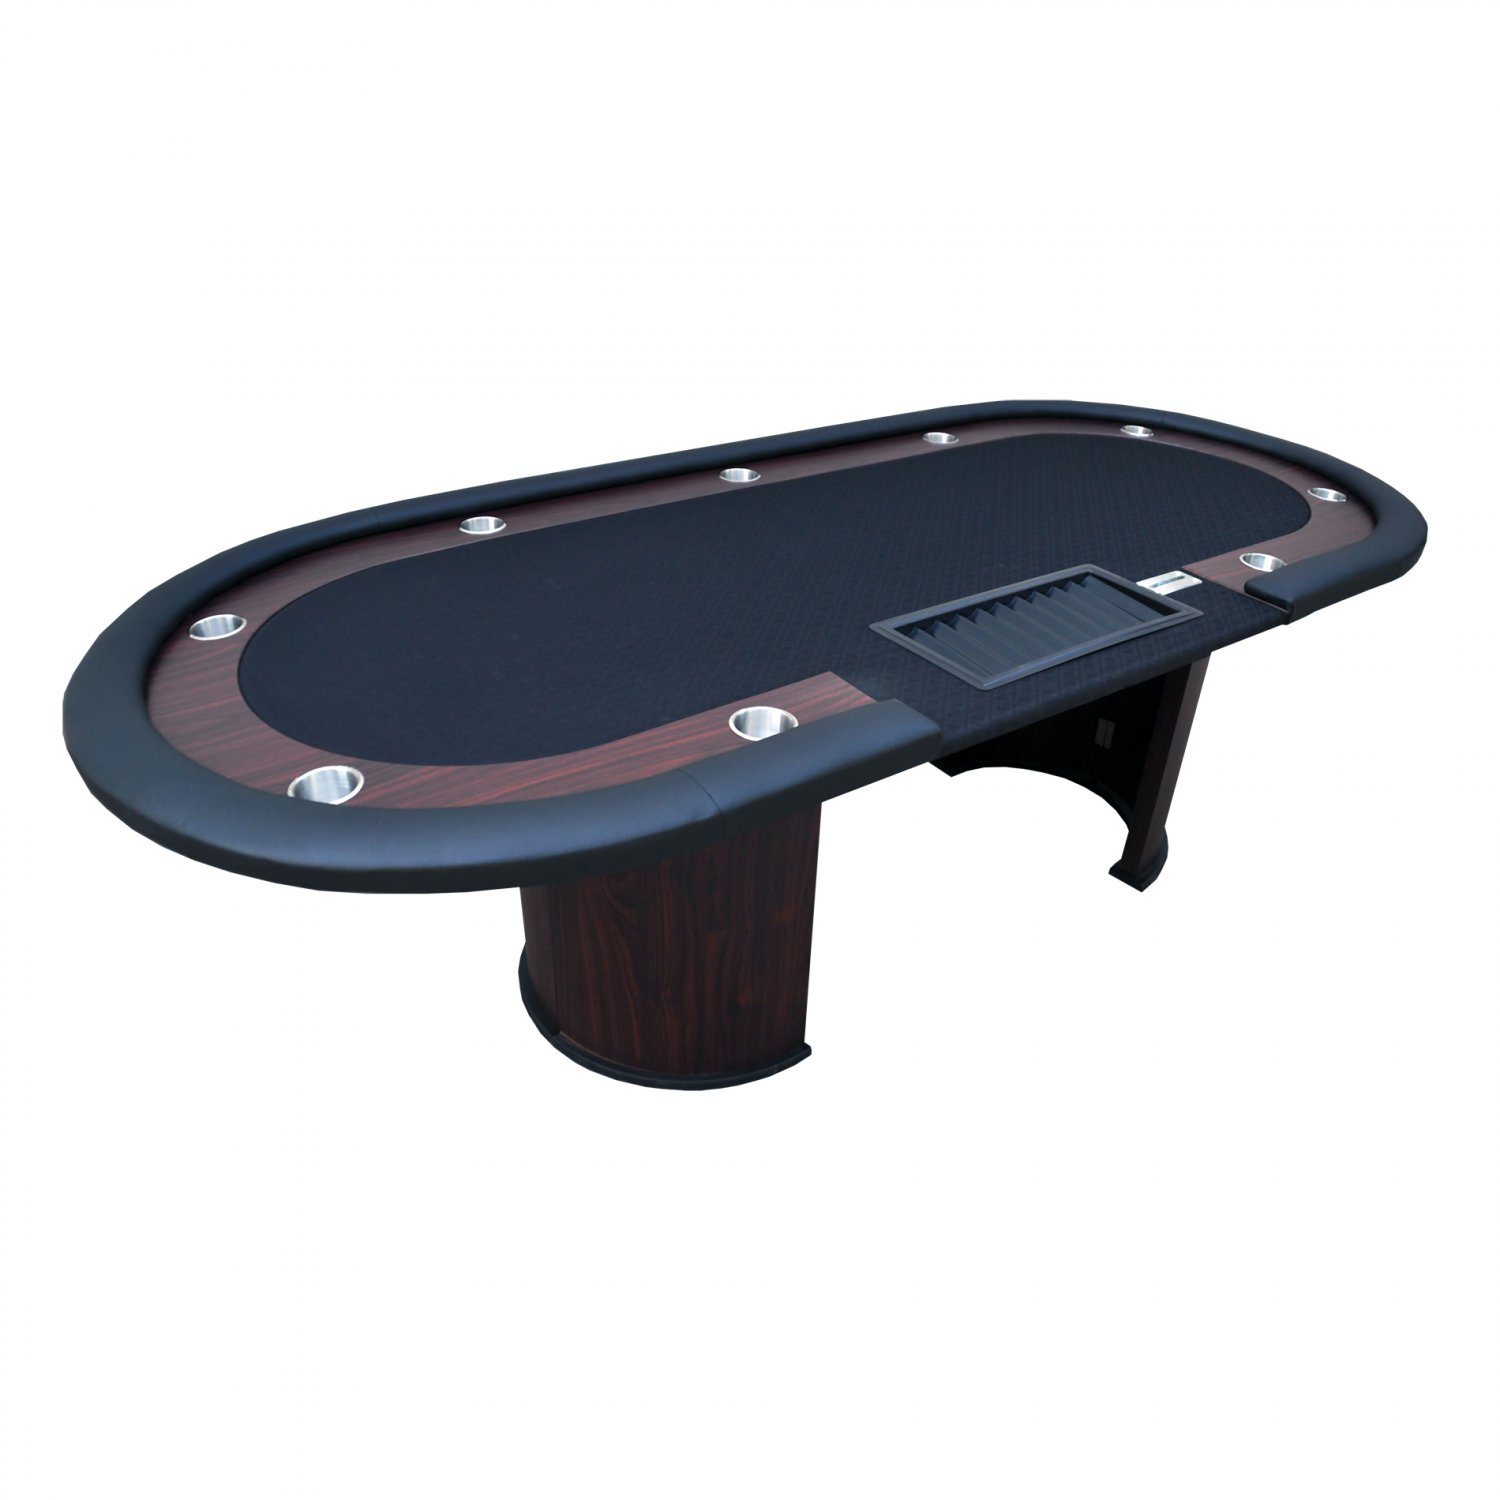 """96"""" 10 Players Texas Hold'em Wooden Legs Poker Table W/ Drop Box Black Ver.2(Ship US Only)#16367-BK#"""